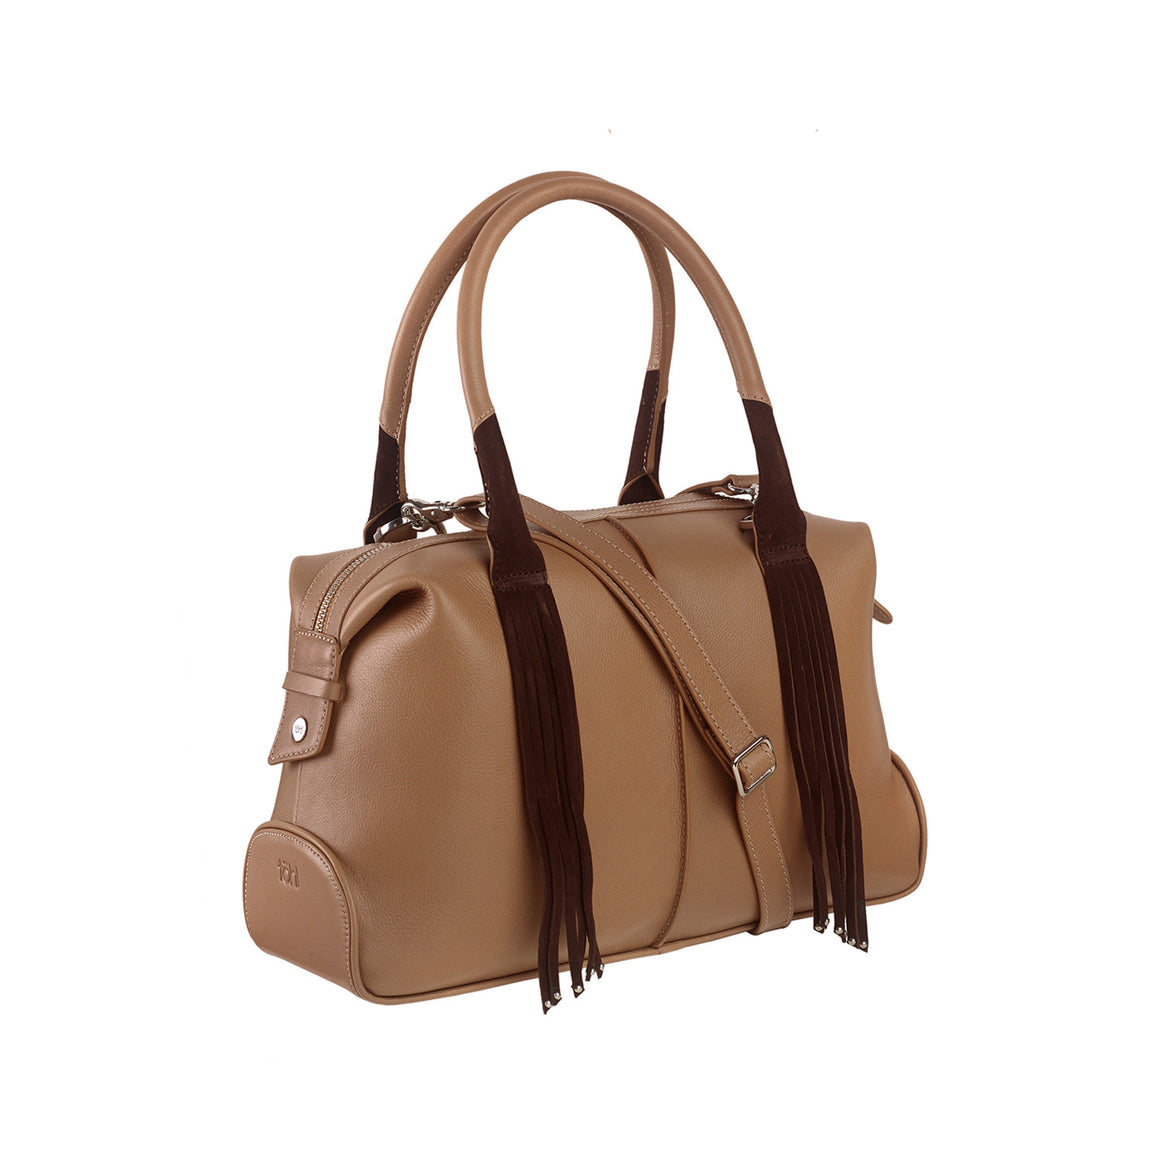 SB 0013 - TOHL ROBYN WOMEN'S DAY BAG - NUDE